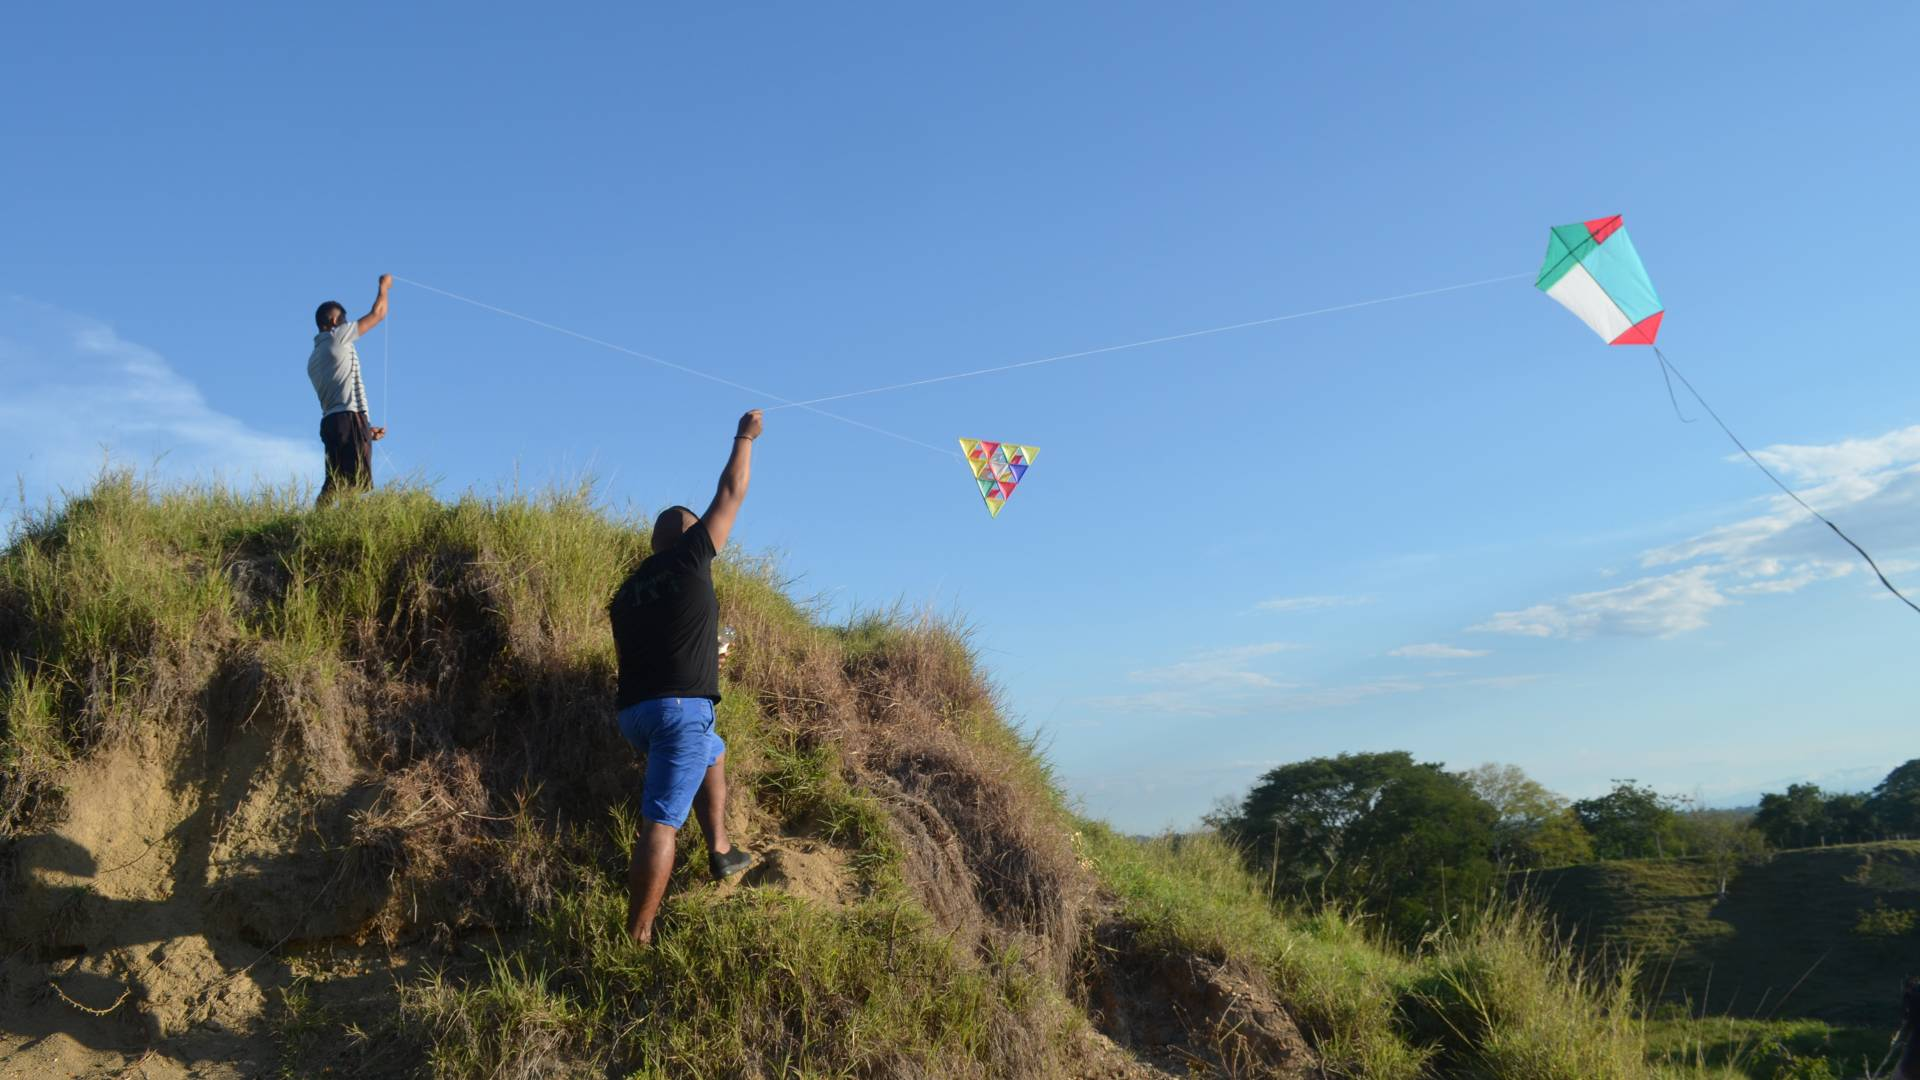 Two men flying kites on hill top